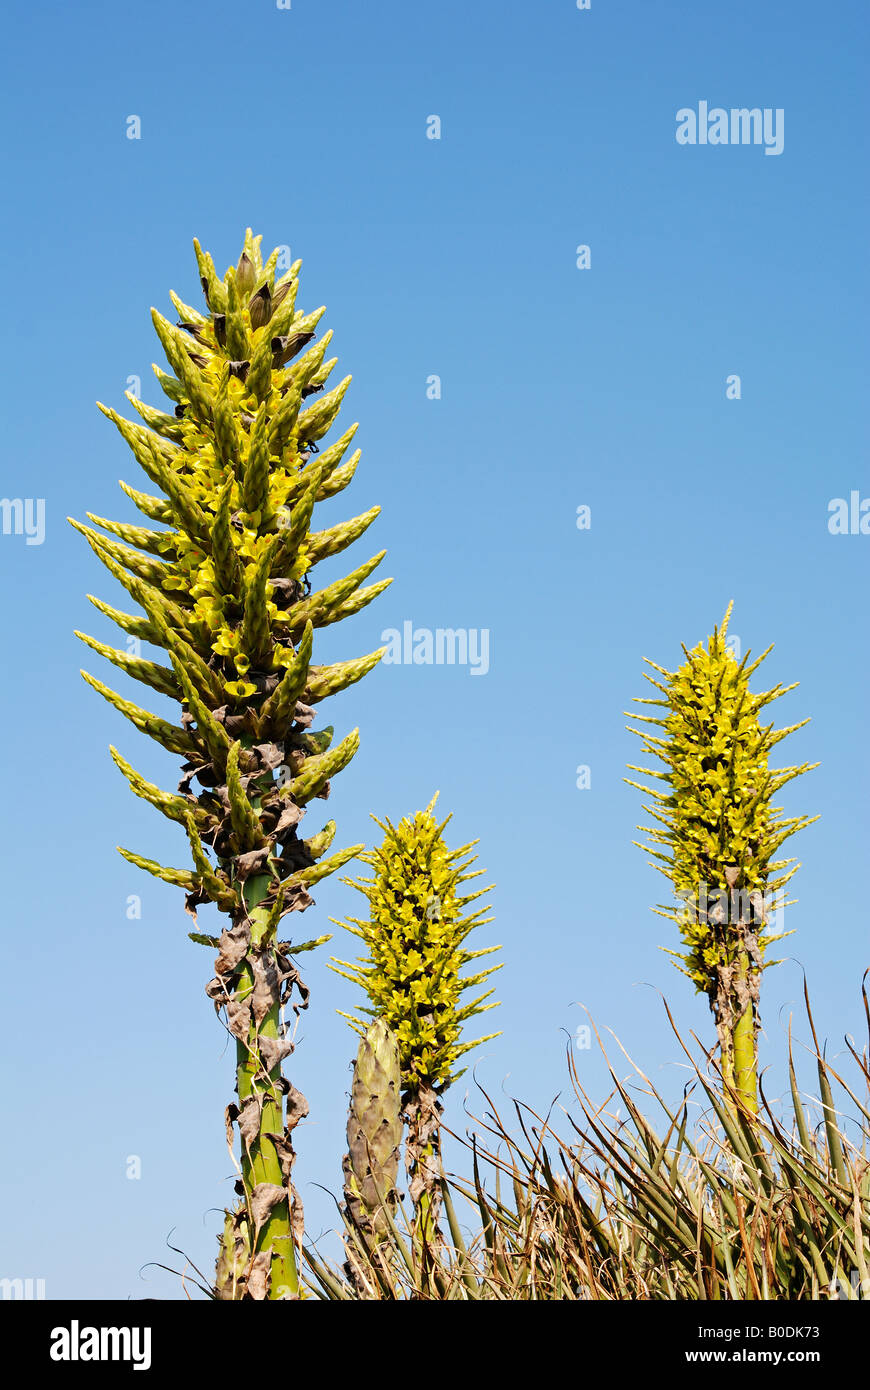 a puya chilensis plant in flower at st.marys gardens,falmouth,cornwall,england - Stock Image